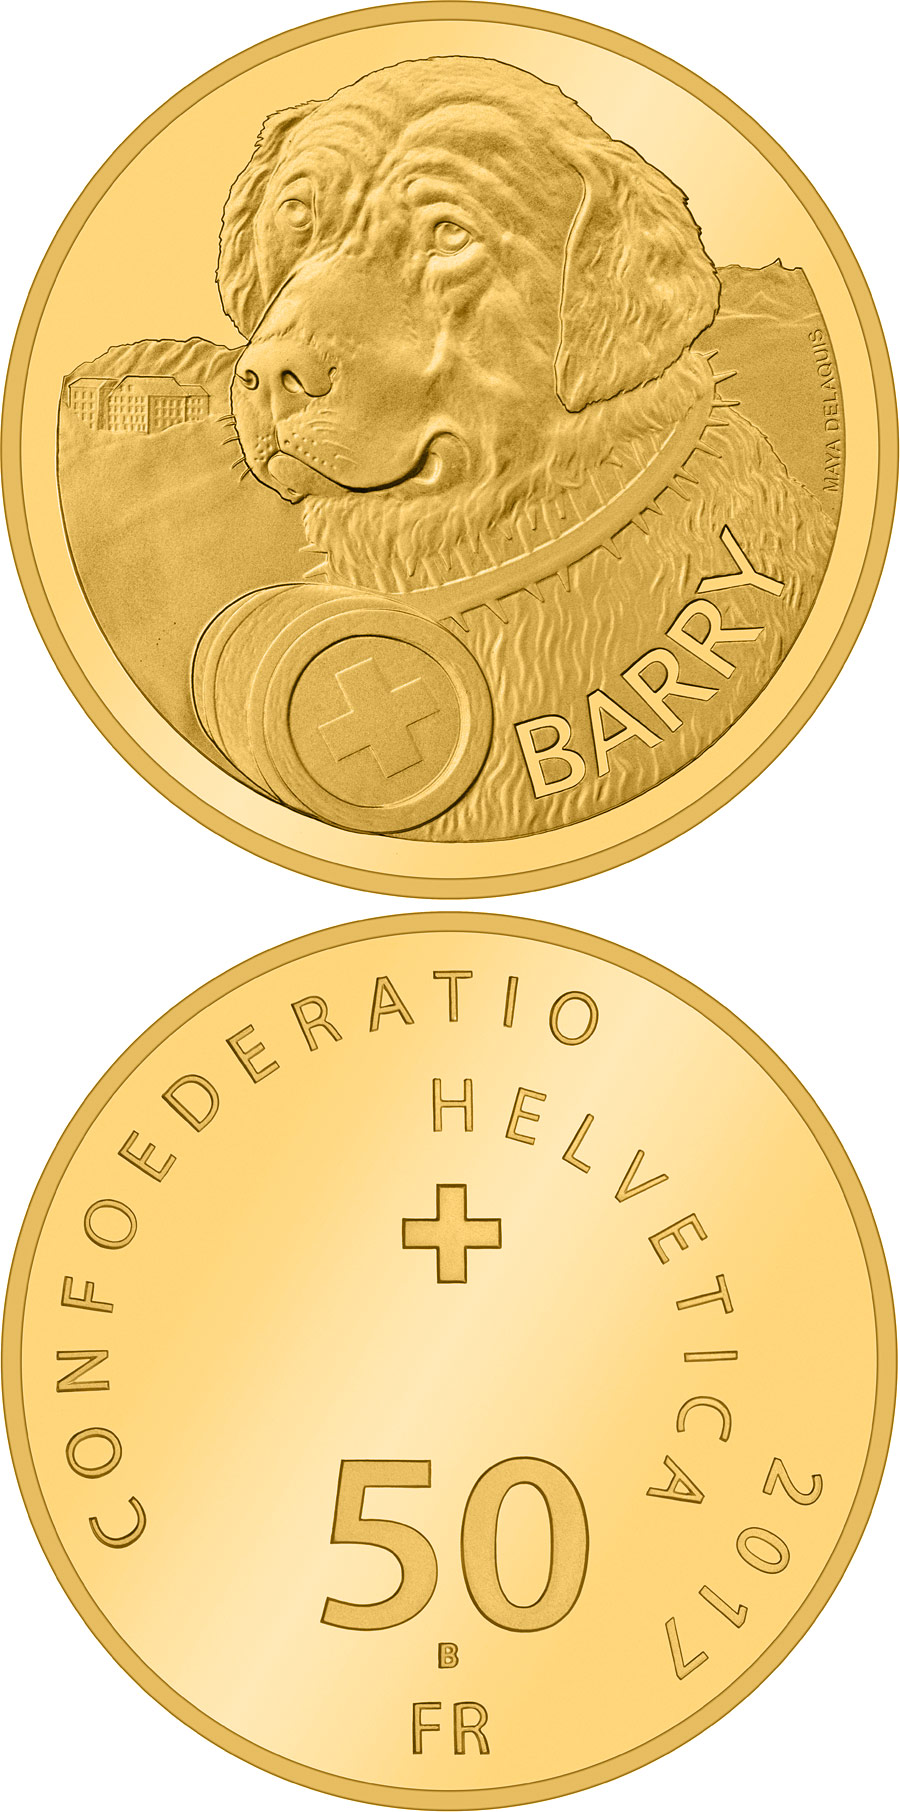 Image of 50 francs coin - Barry | Switzerland 2017.  The Gold coin is of Proof quality.